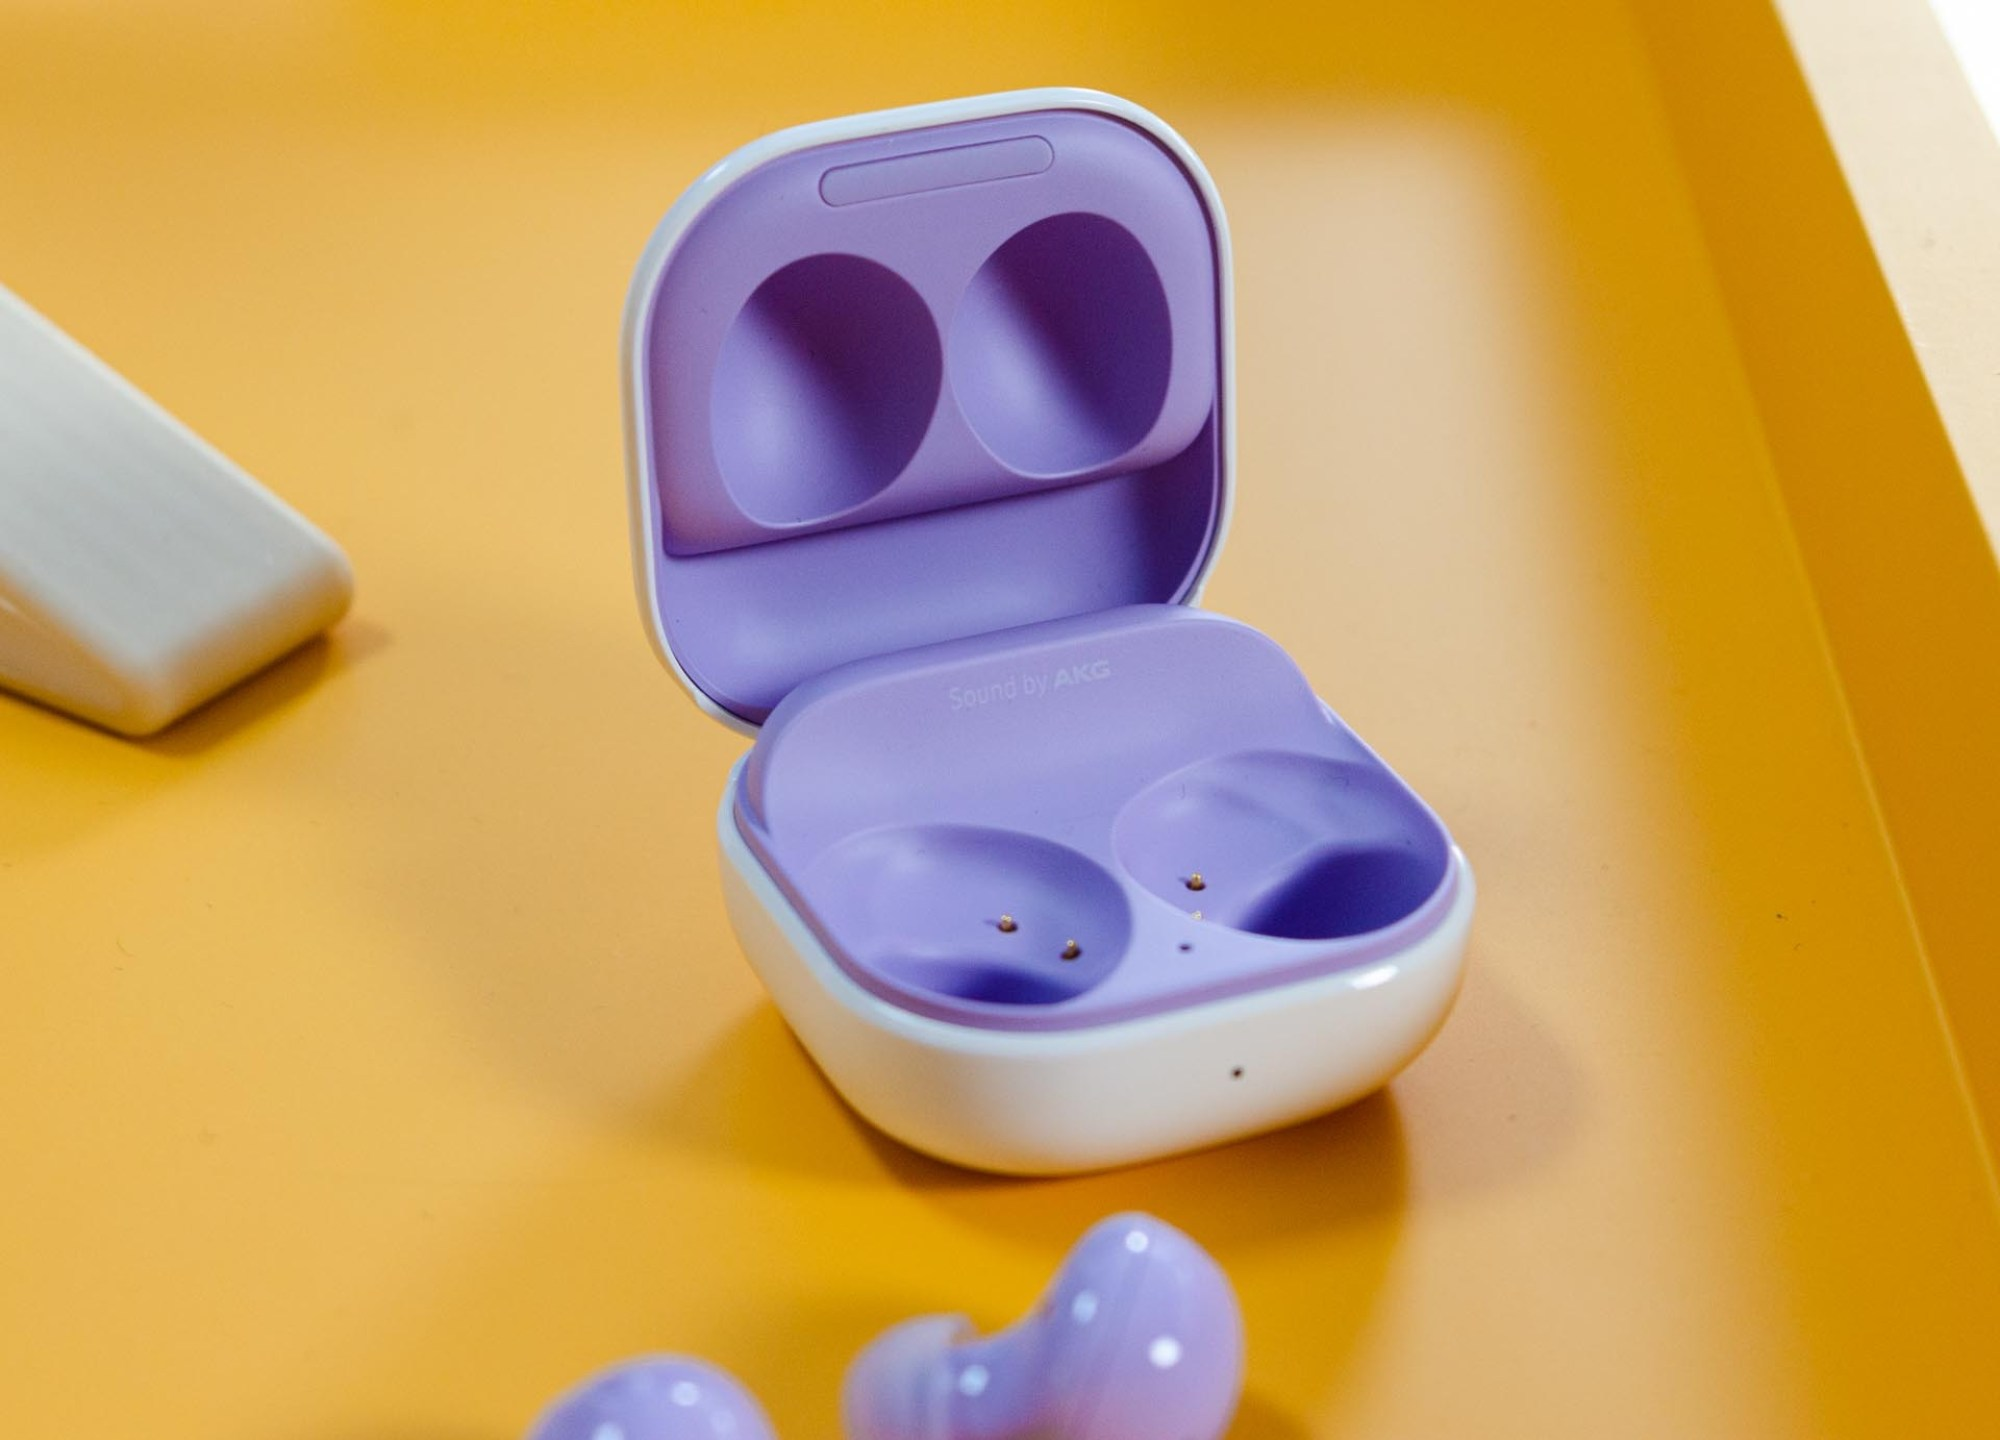 The inside of the case now matches the color of the earbuds.